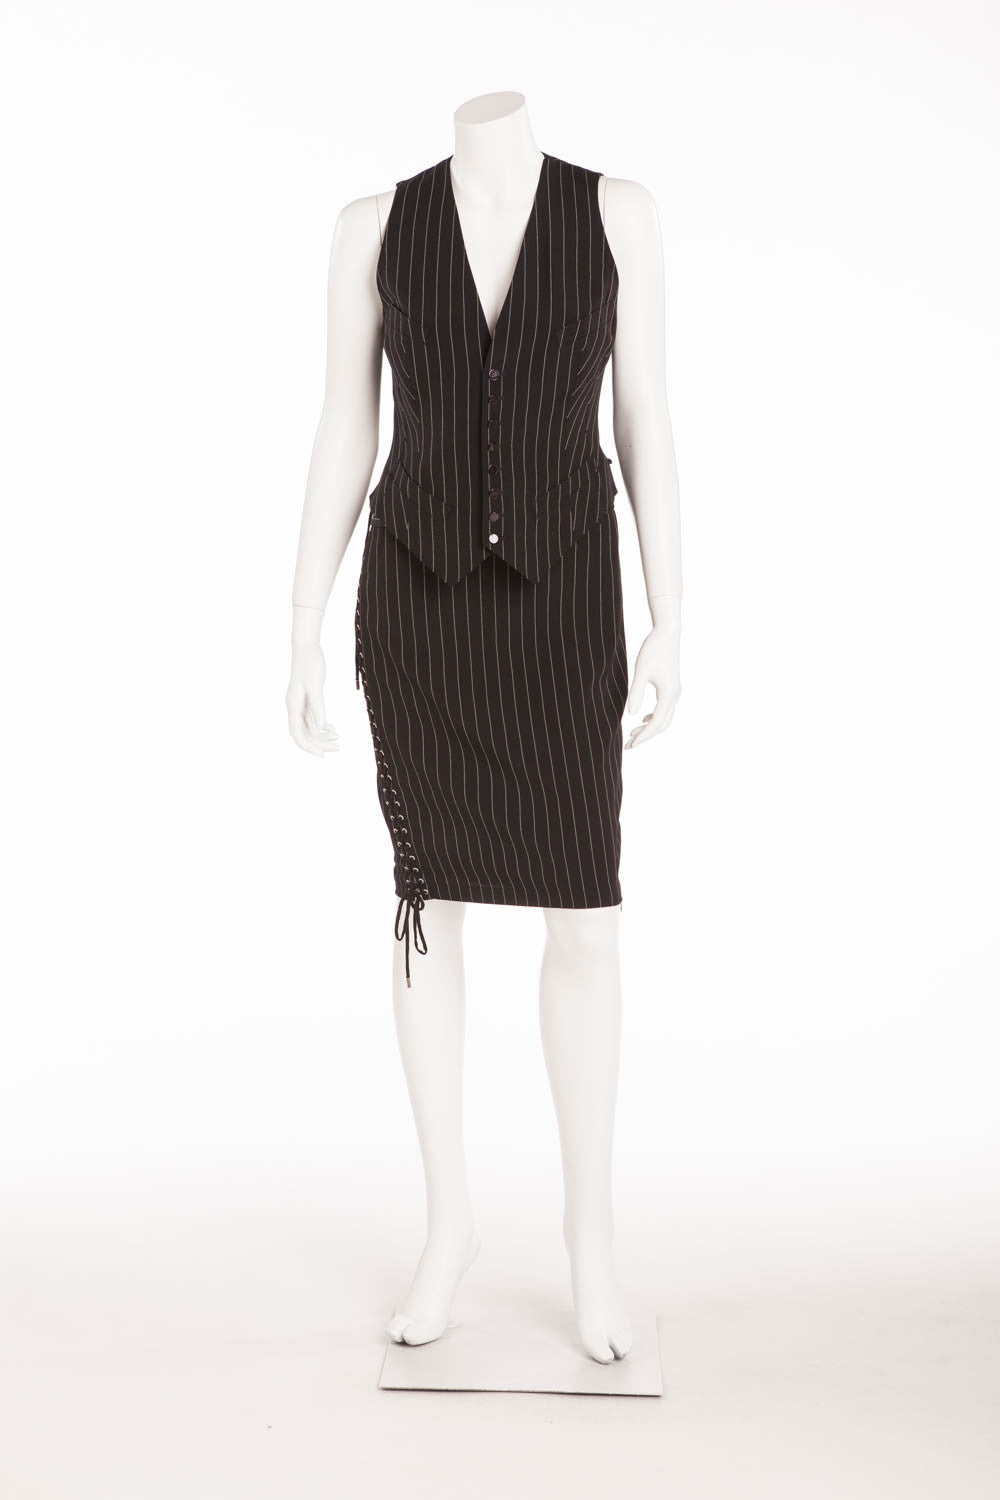 Jean Paul Gaultier - 2PC Pin Stripe Vest & Skirt Lace Up IT 40